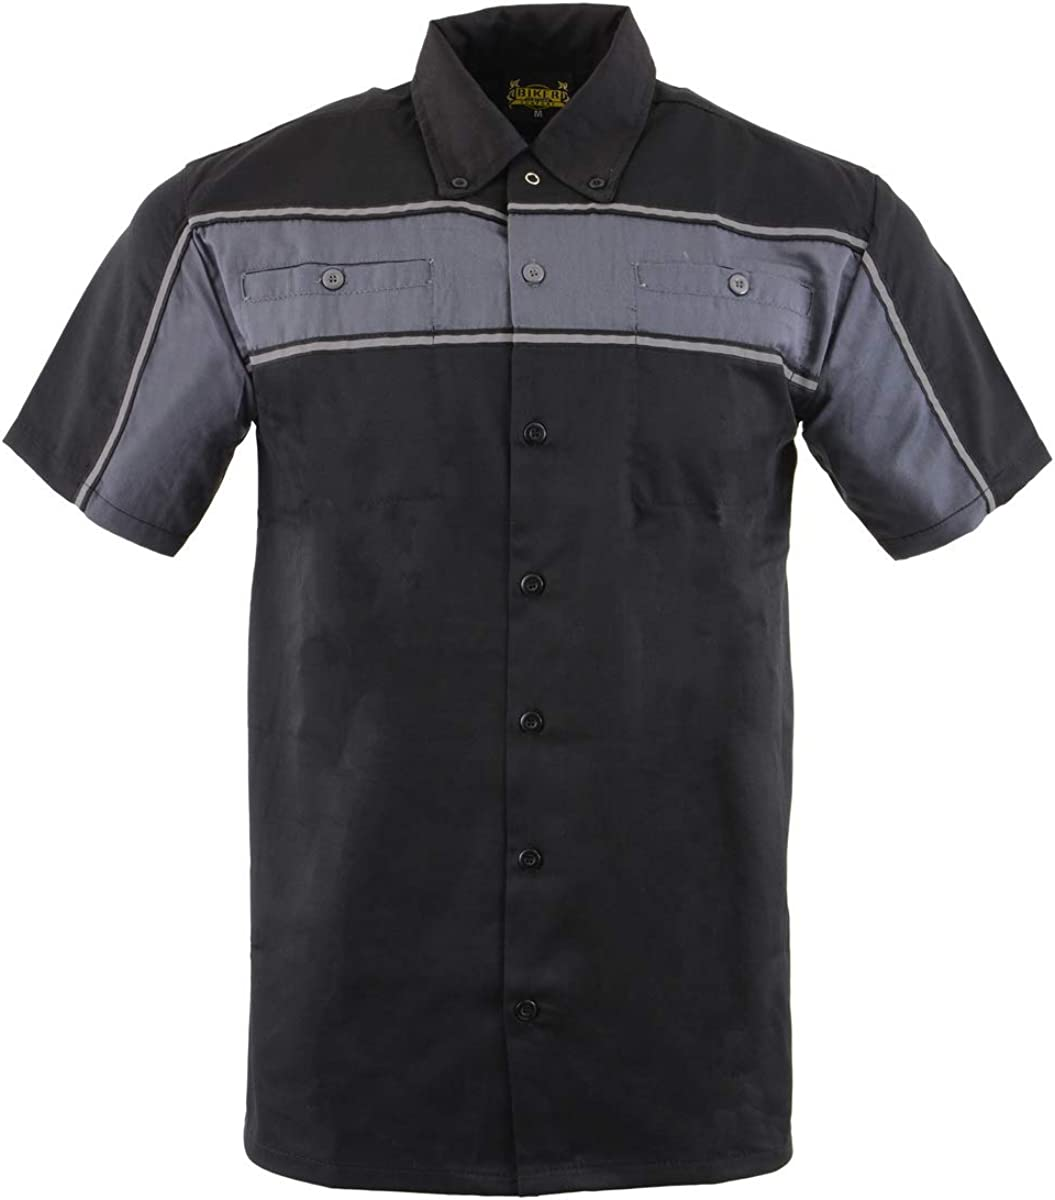 Biker Clothing Co. MDM11672.01 Men's Black and Grey Short Sleeve Mechanic Shirt with Reflective Material